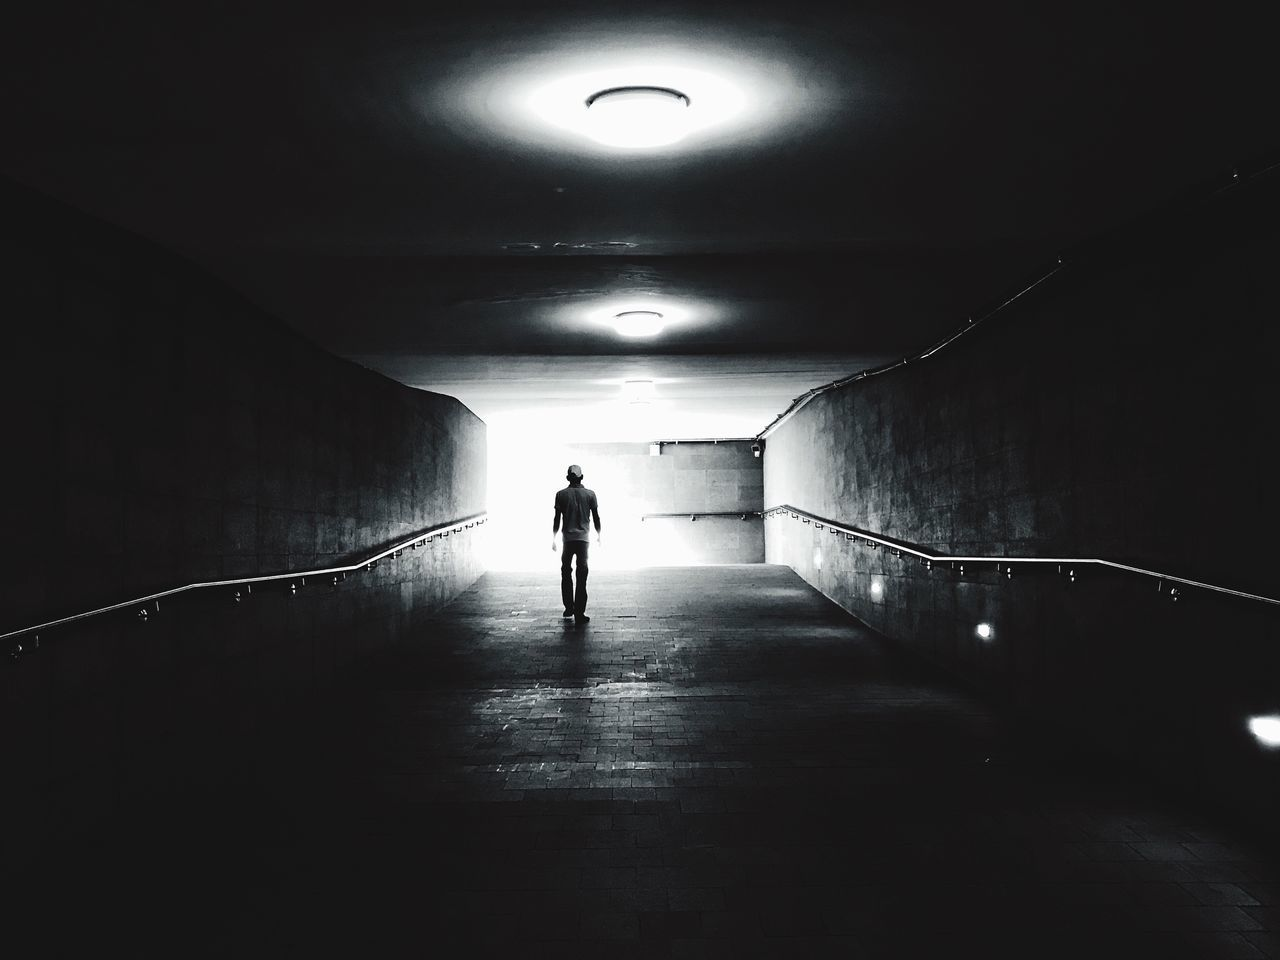 the tunnel Illuminated Tunnel Real People Full Length One Person Indoors  Architecture Built Structure Walking The Way Forward Leisure Activity Light At The End Of The Tunnel Underground Rear View Silhouette Lifestyles Men Day People